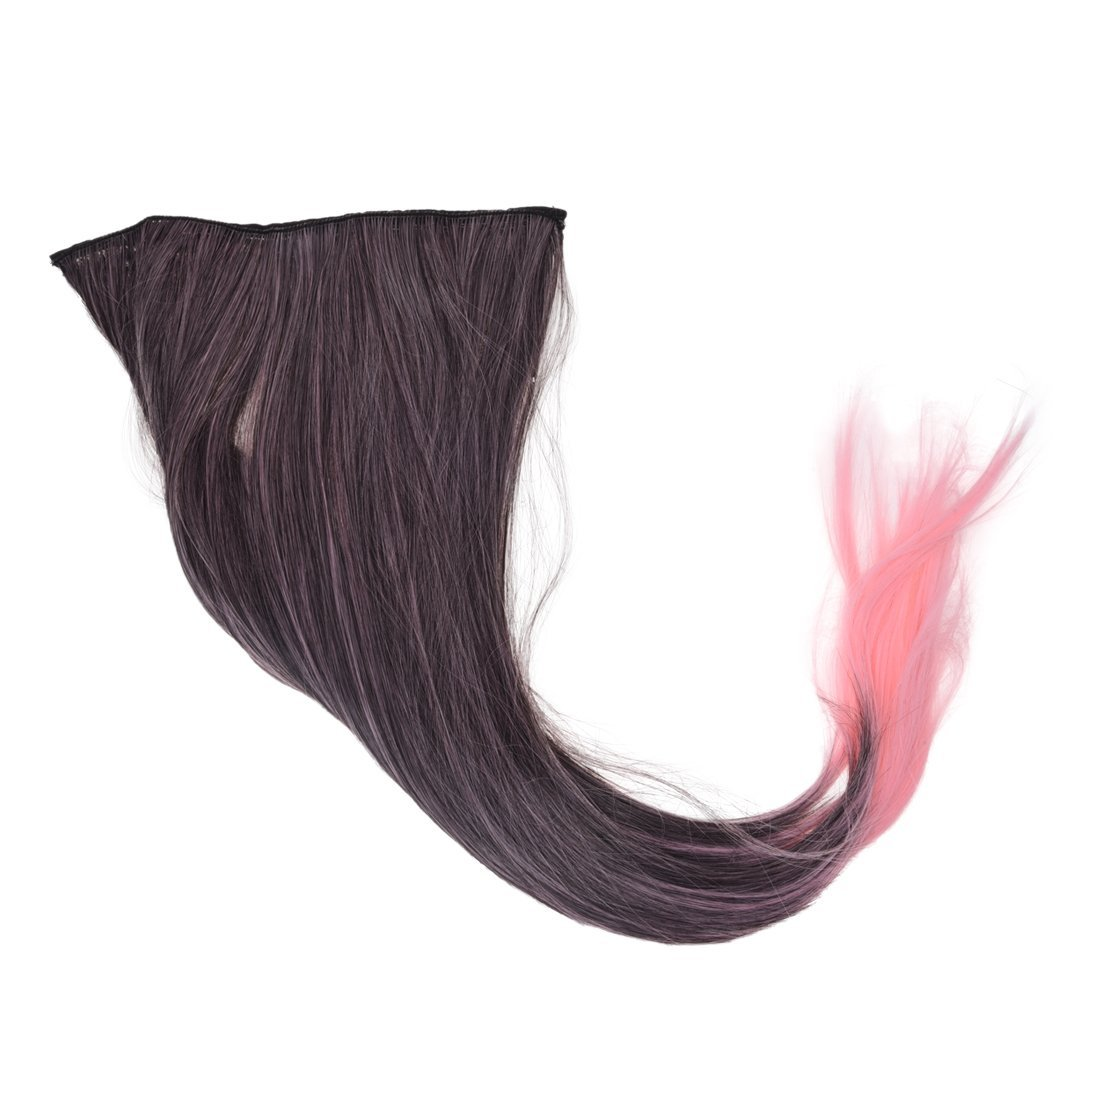 Cheap Pink Hair Extension Clips Find Pink Hair Extension Clips